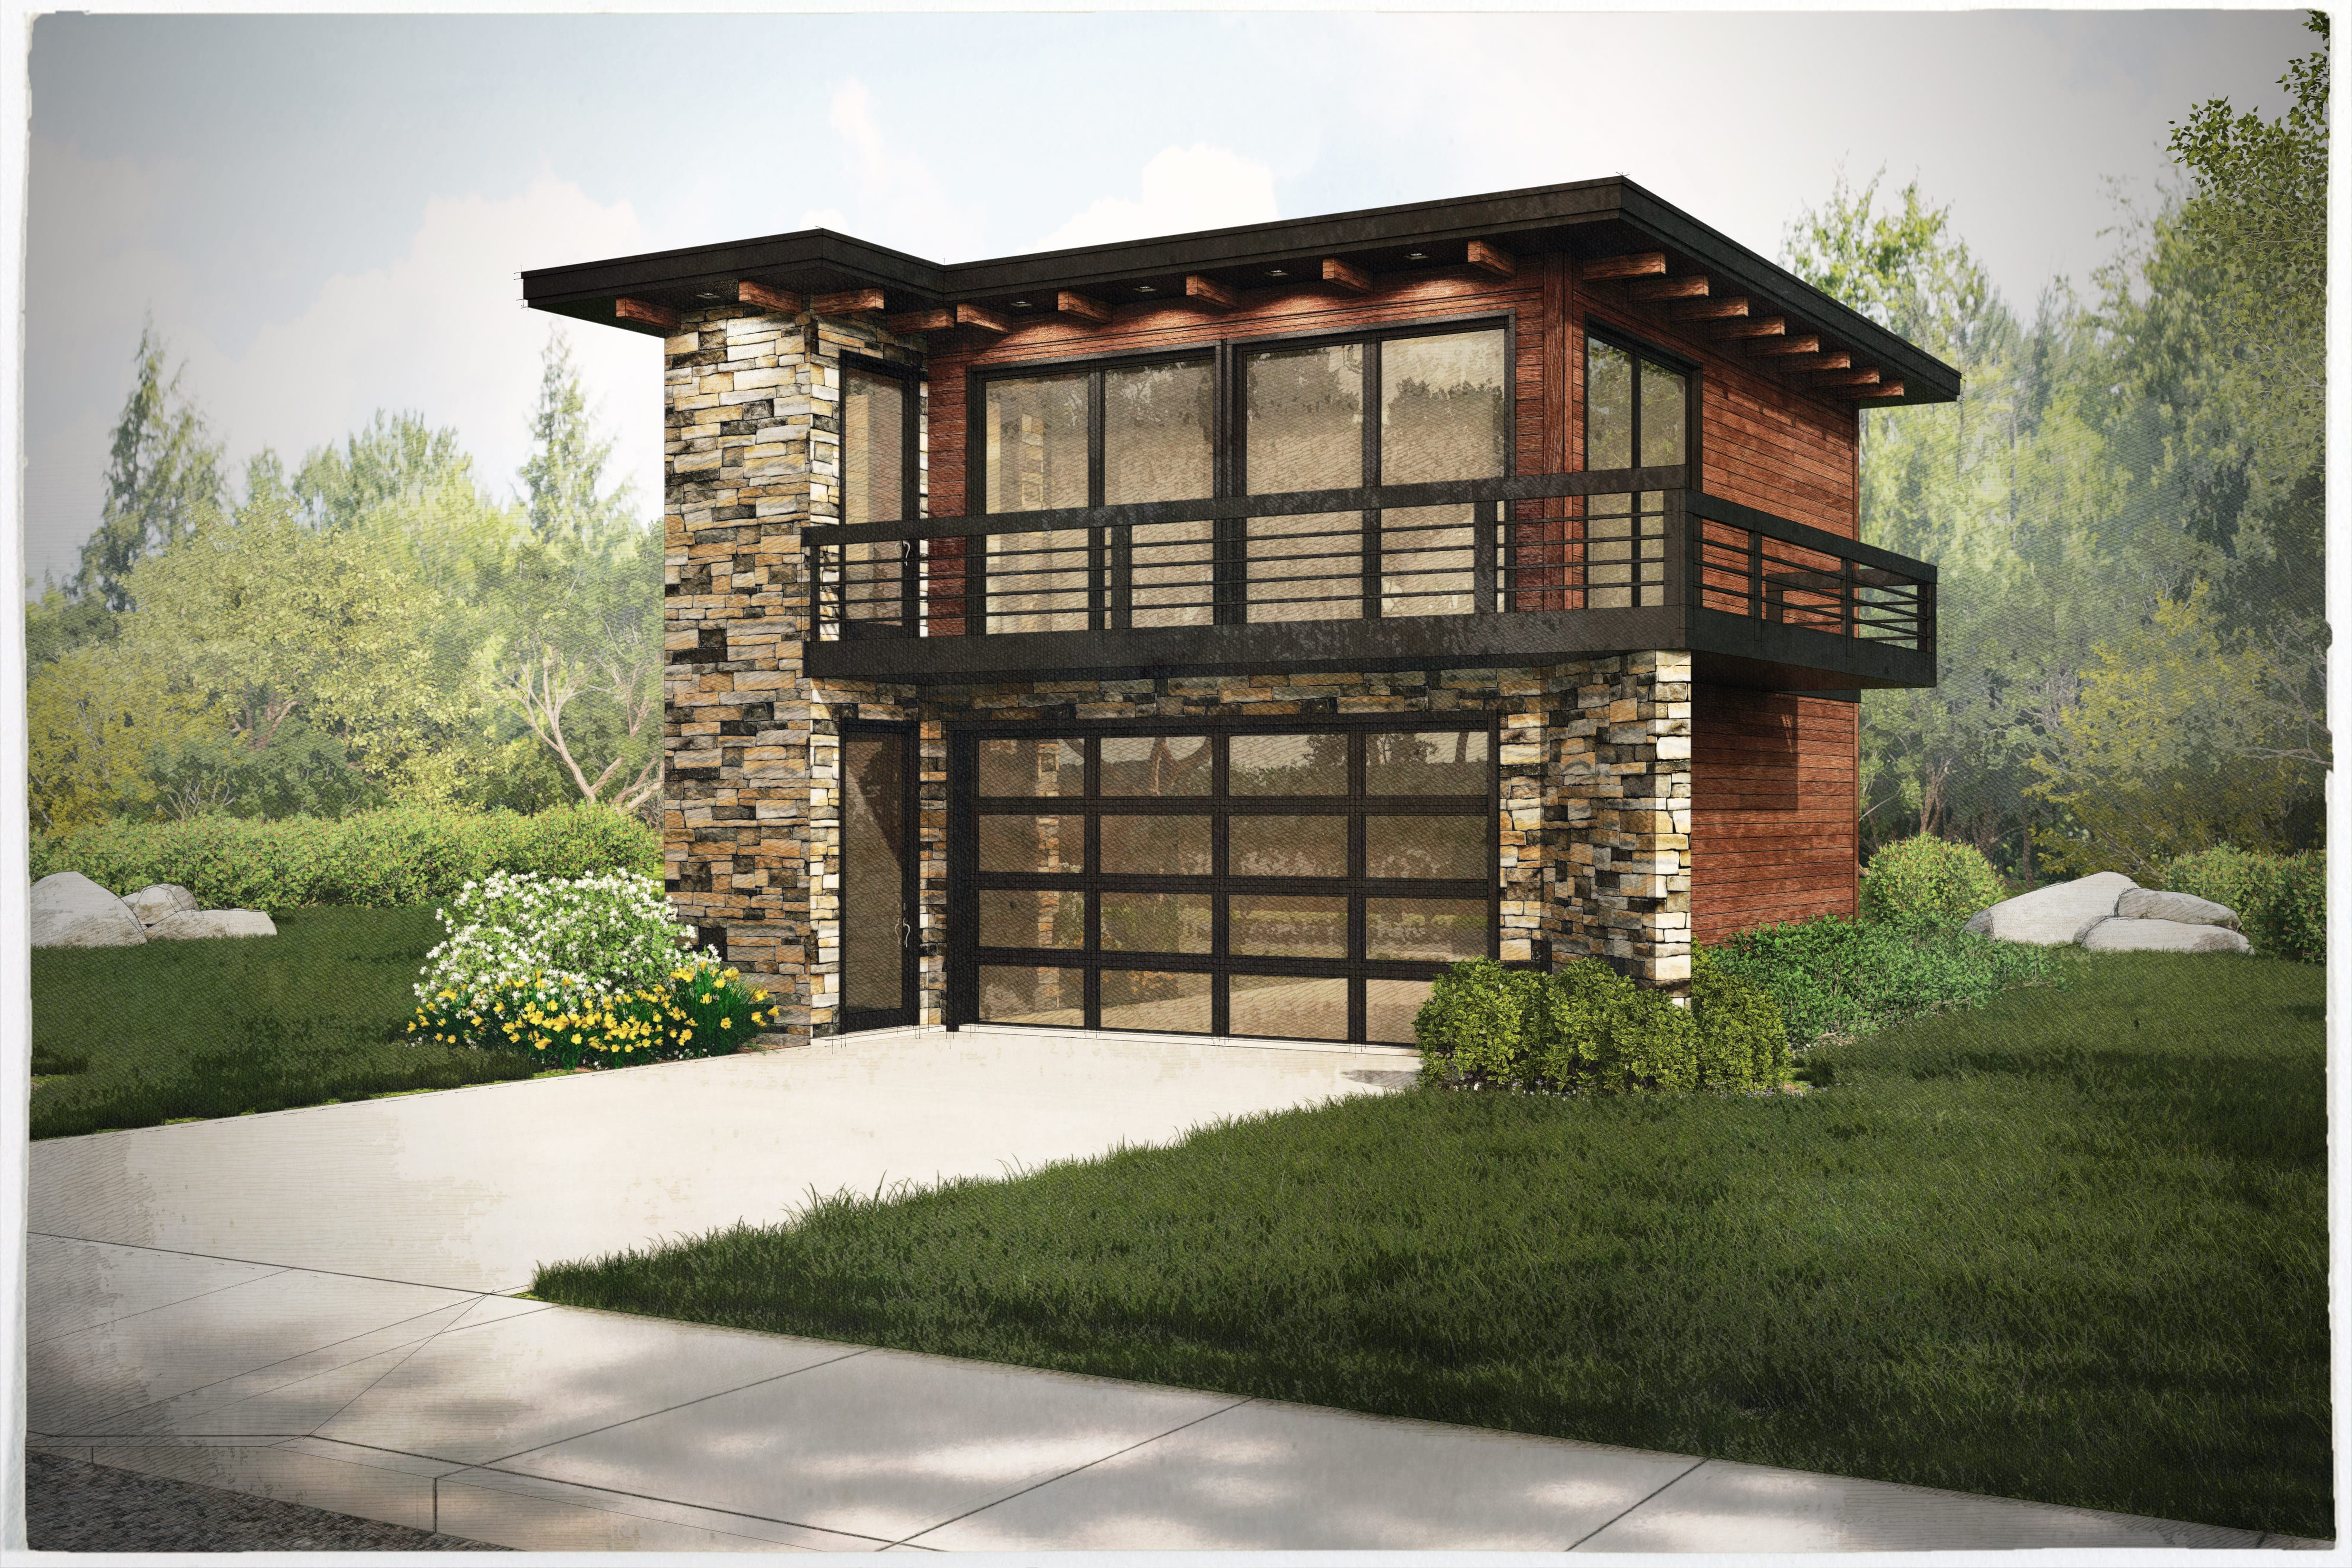 Garage Wapartments With 2car, 1 Bedrm, 615 Sq Ft Plan